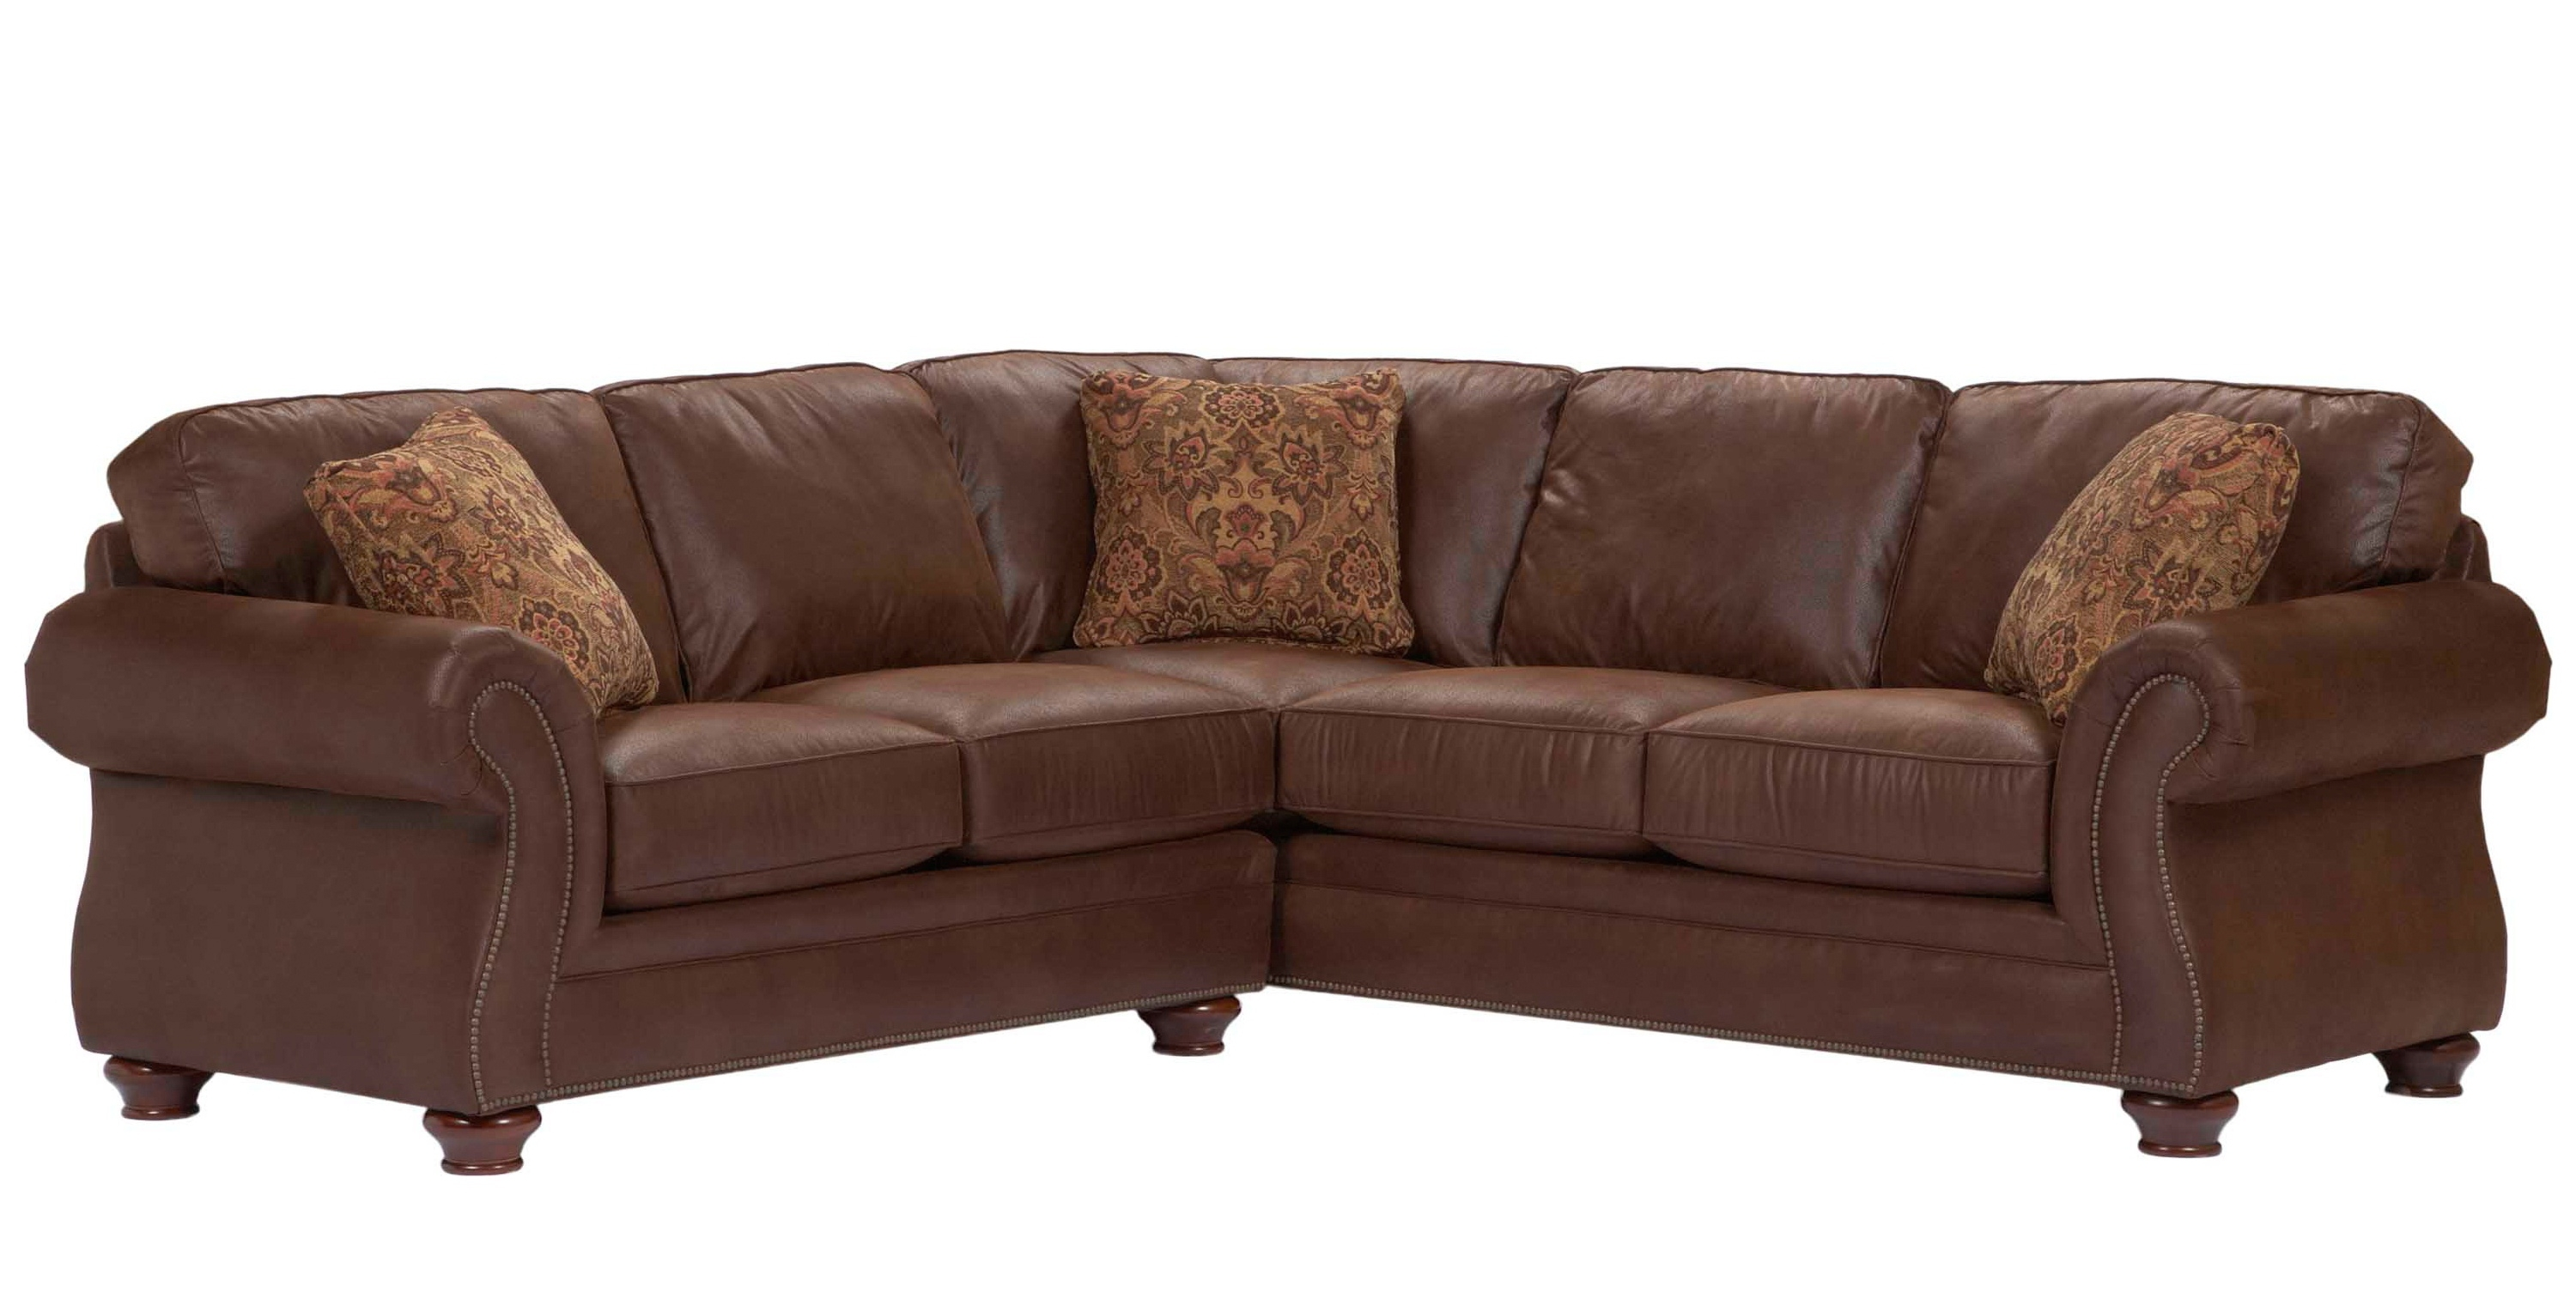 Newest Broyhill Laramie Sectional 5080 1Q/5080 4Q For Sectional Sofas At Broyhill (View 7 of 15)